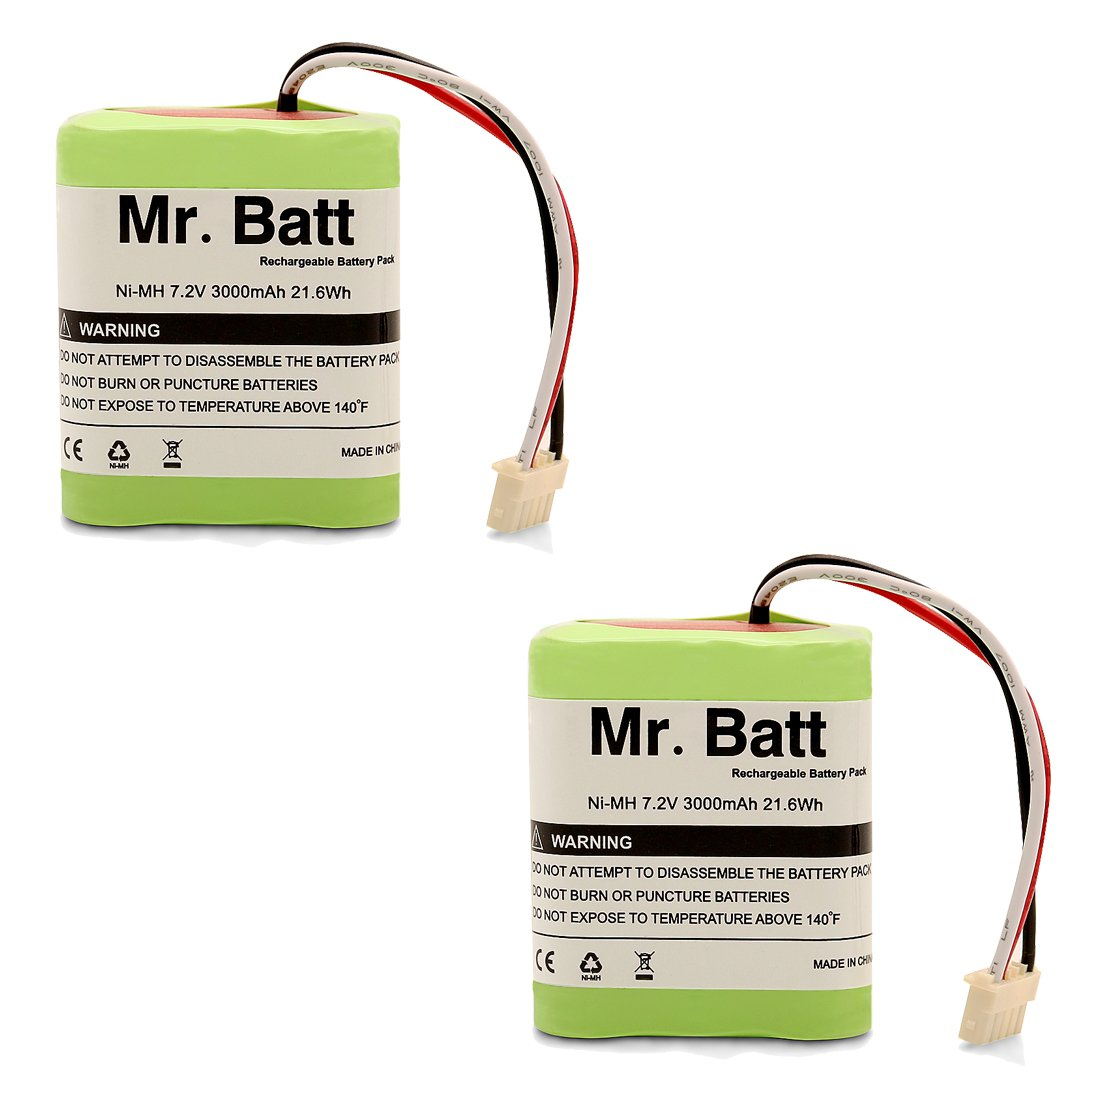 Mr.Batt Replacement Battery for iRobot Braava 380t Battery for Braava 380, Mint 5200, 7.2 Volt 3000mAh MB-IRO-BRV380T